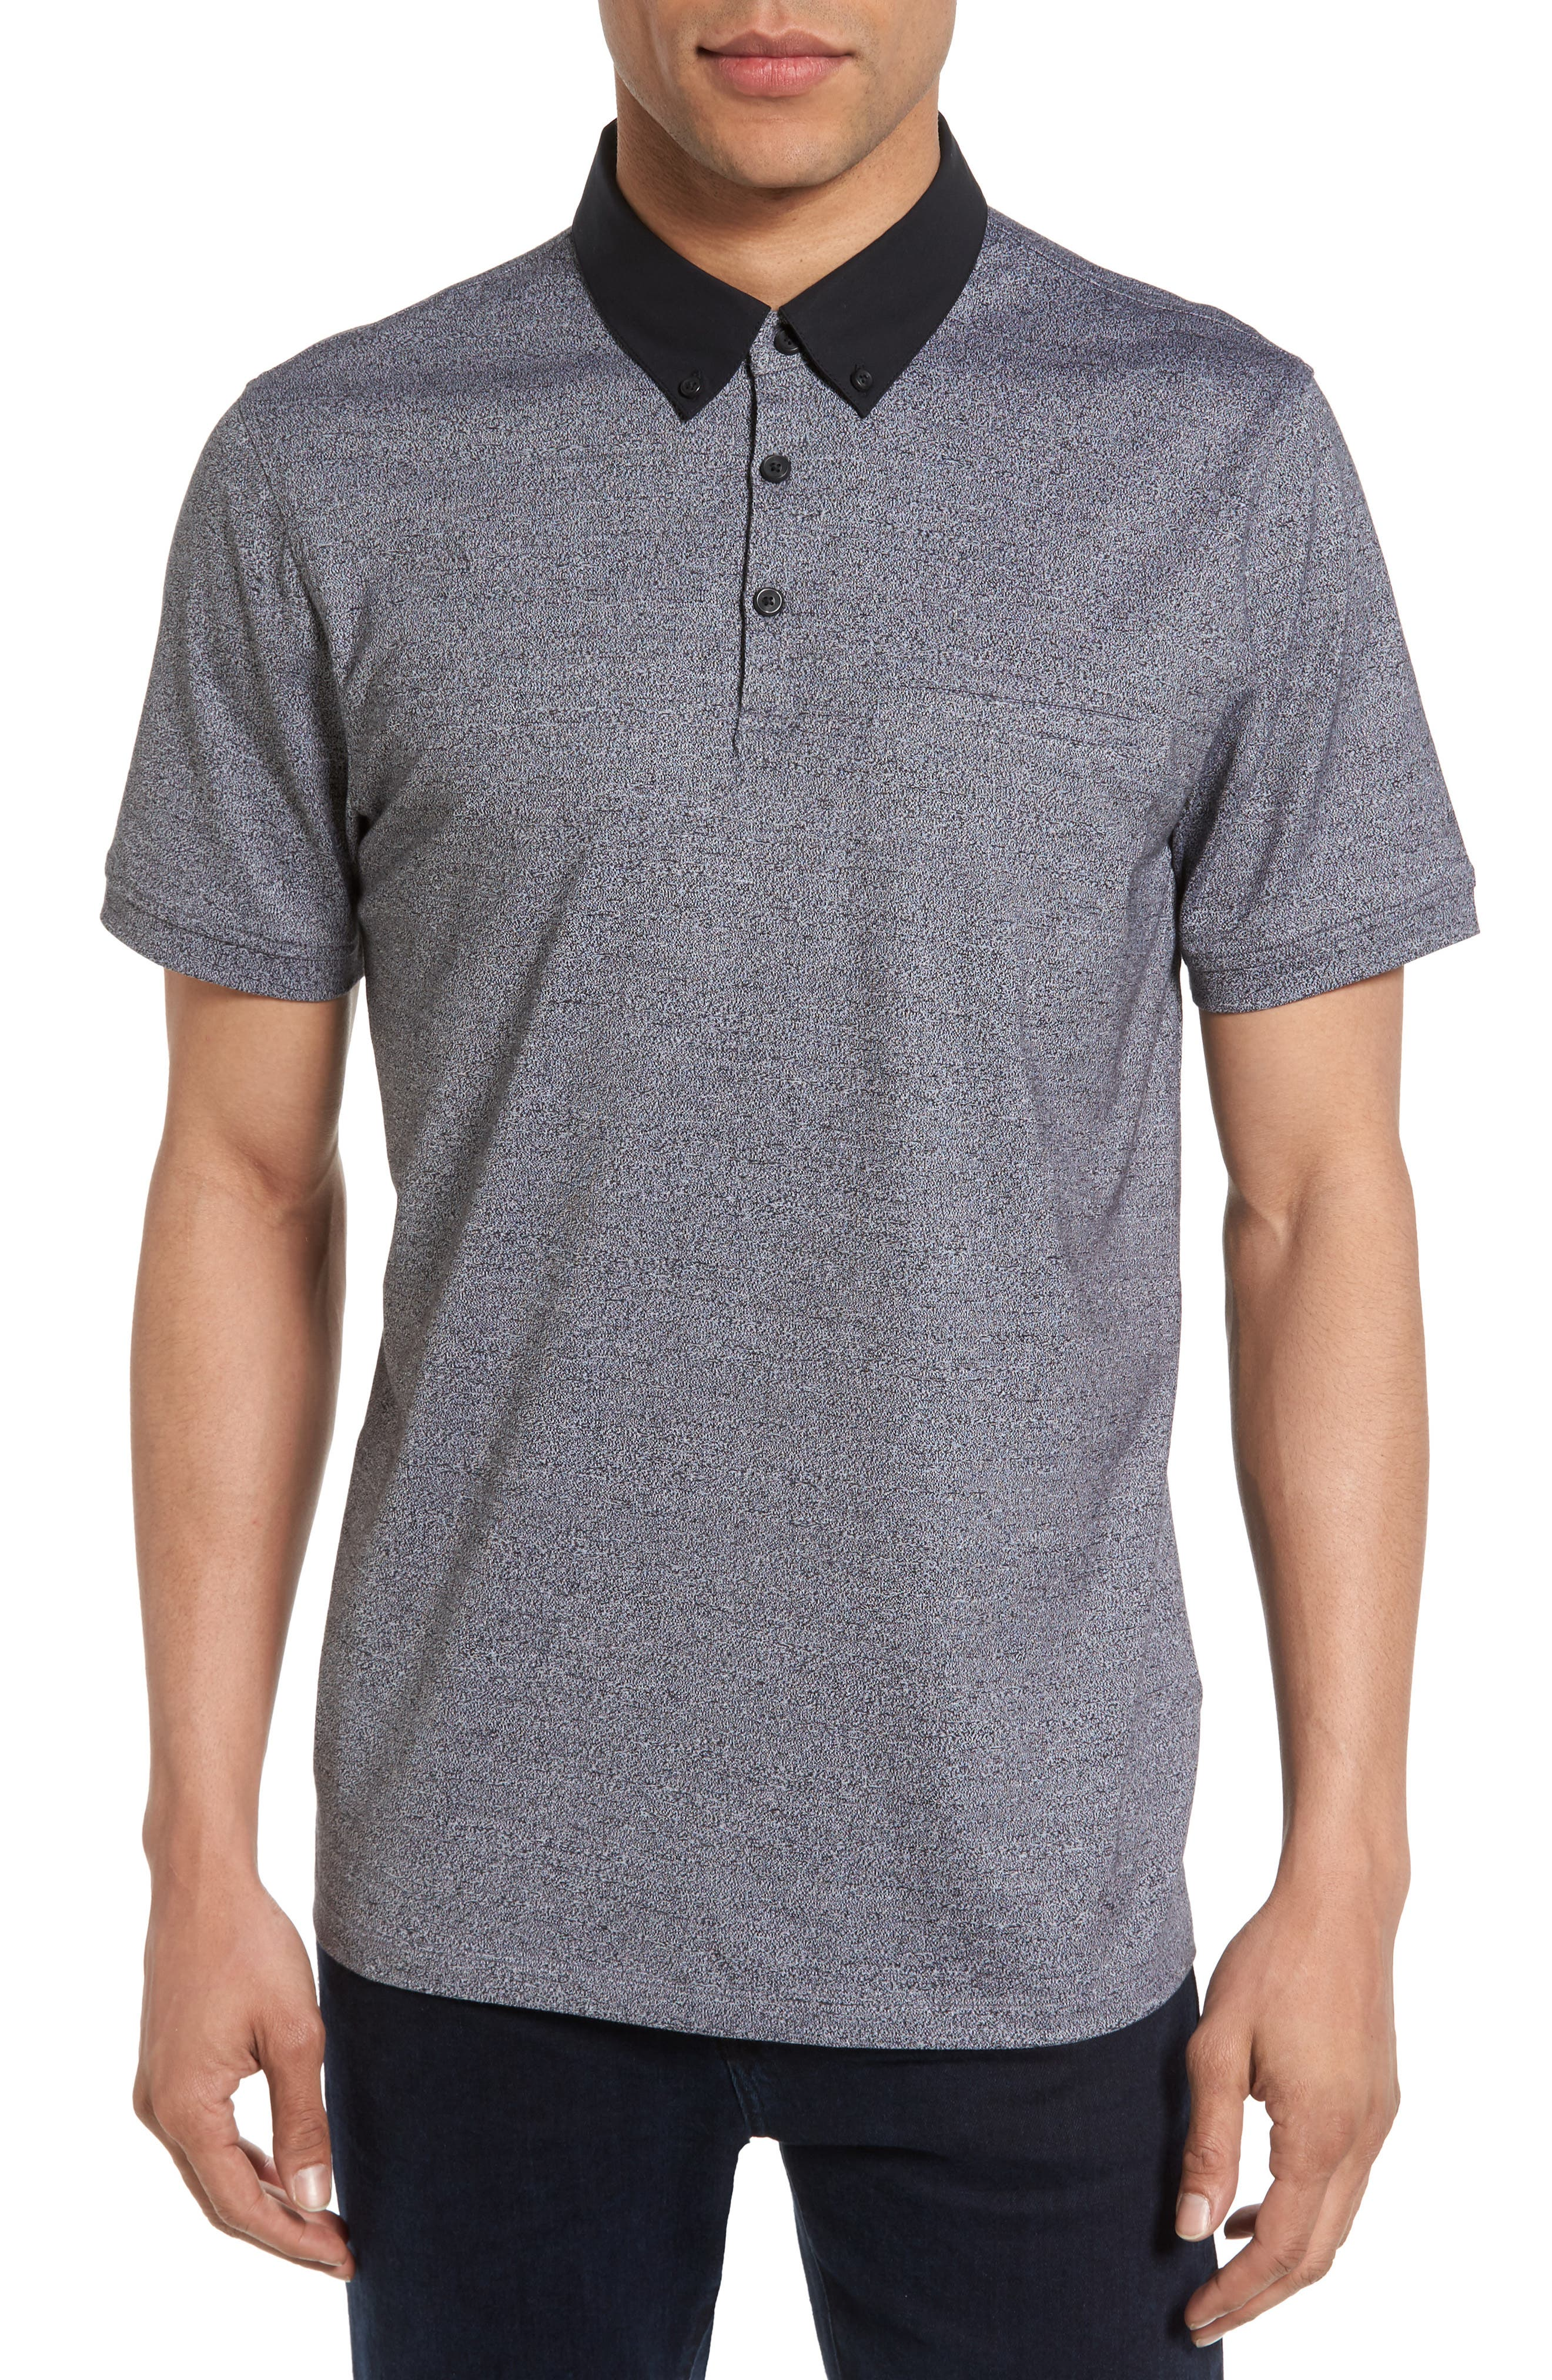 Calibrate Trim Fit Pocket Polo